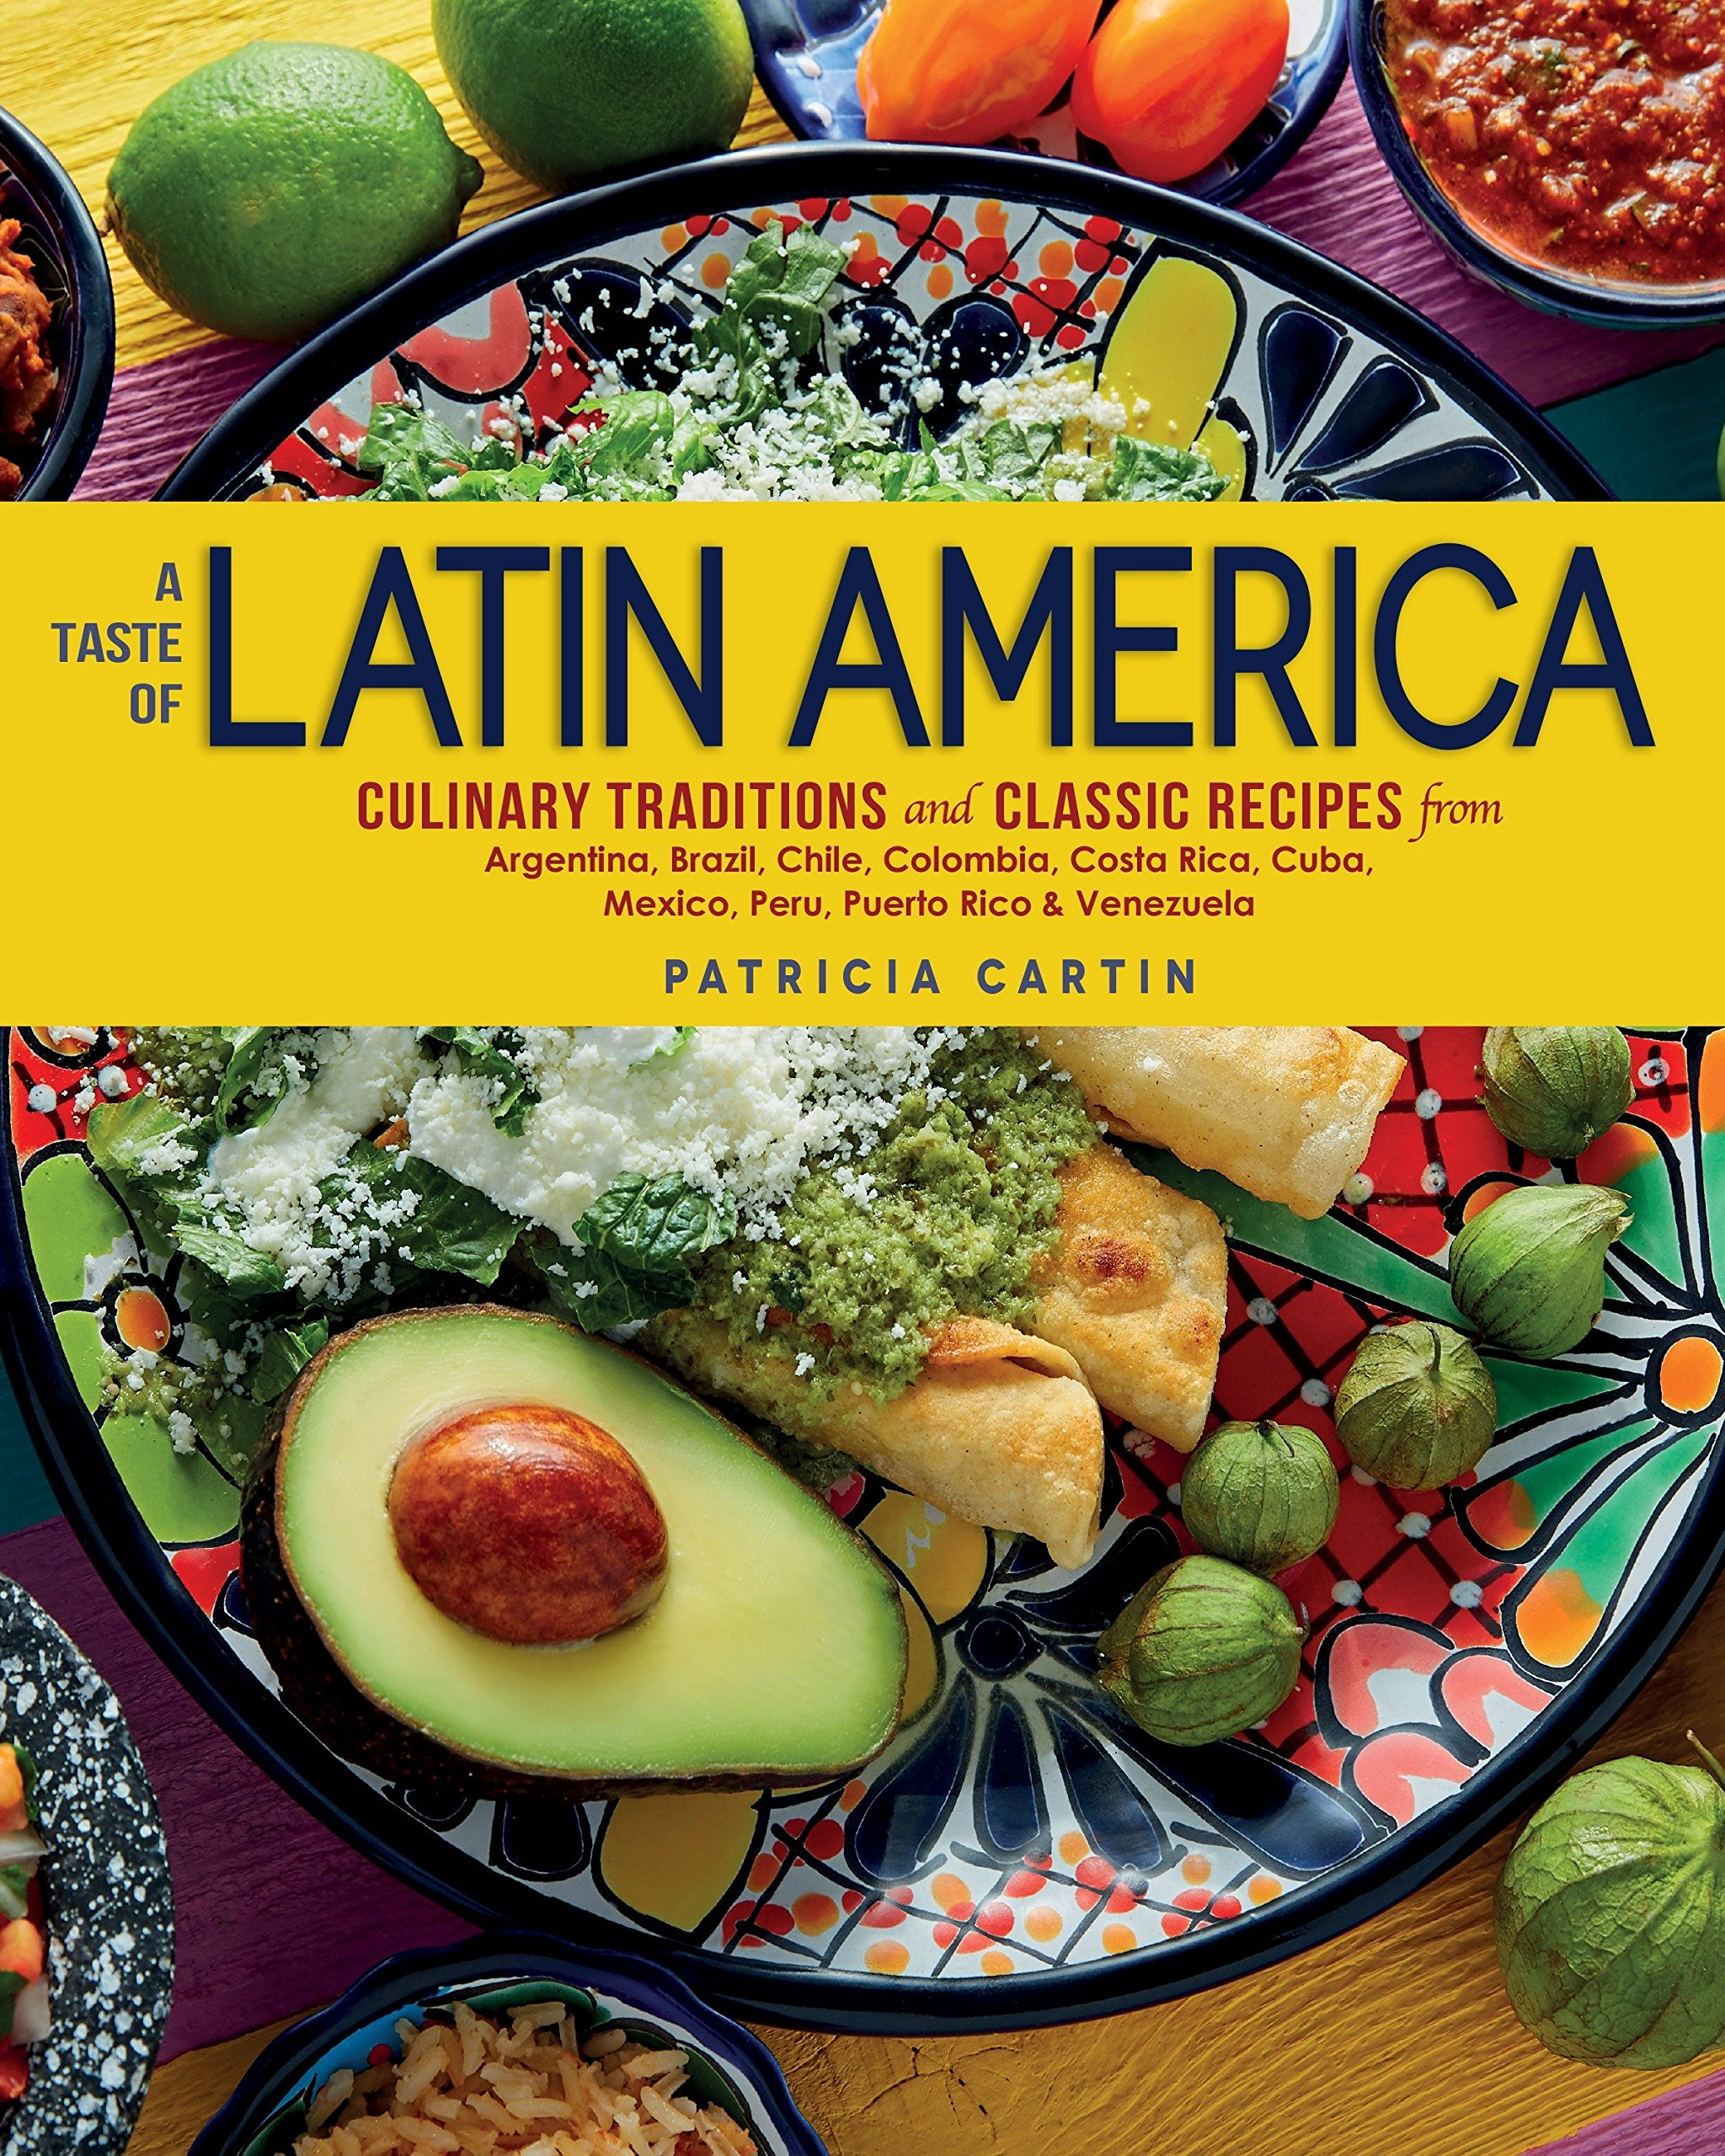 A Taste Of Latin America: Culinary Traditions and Classic Recipes from Argentina, Brazil, Chile, Colombia, Costa Rica, Cuba, Mexico, Peru, ...